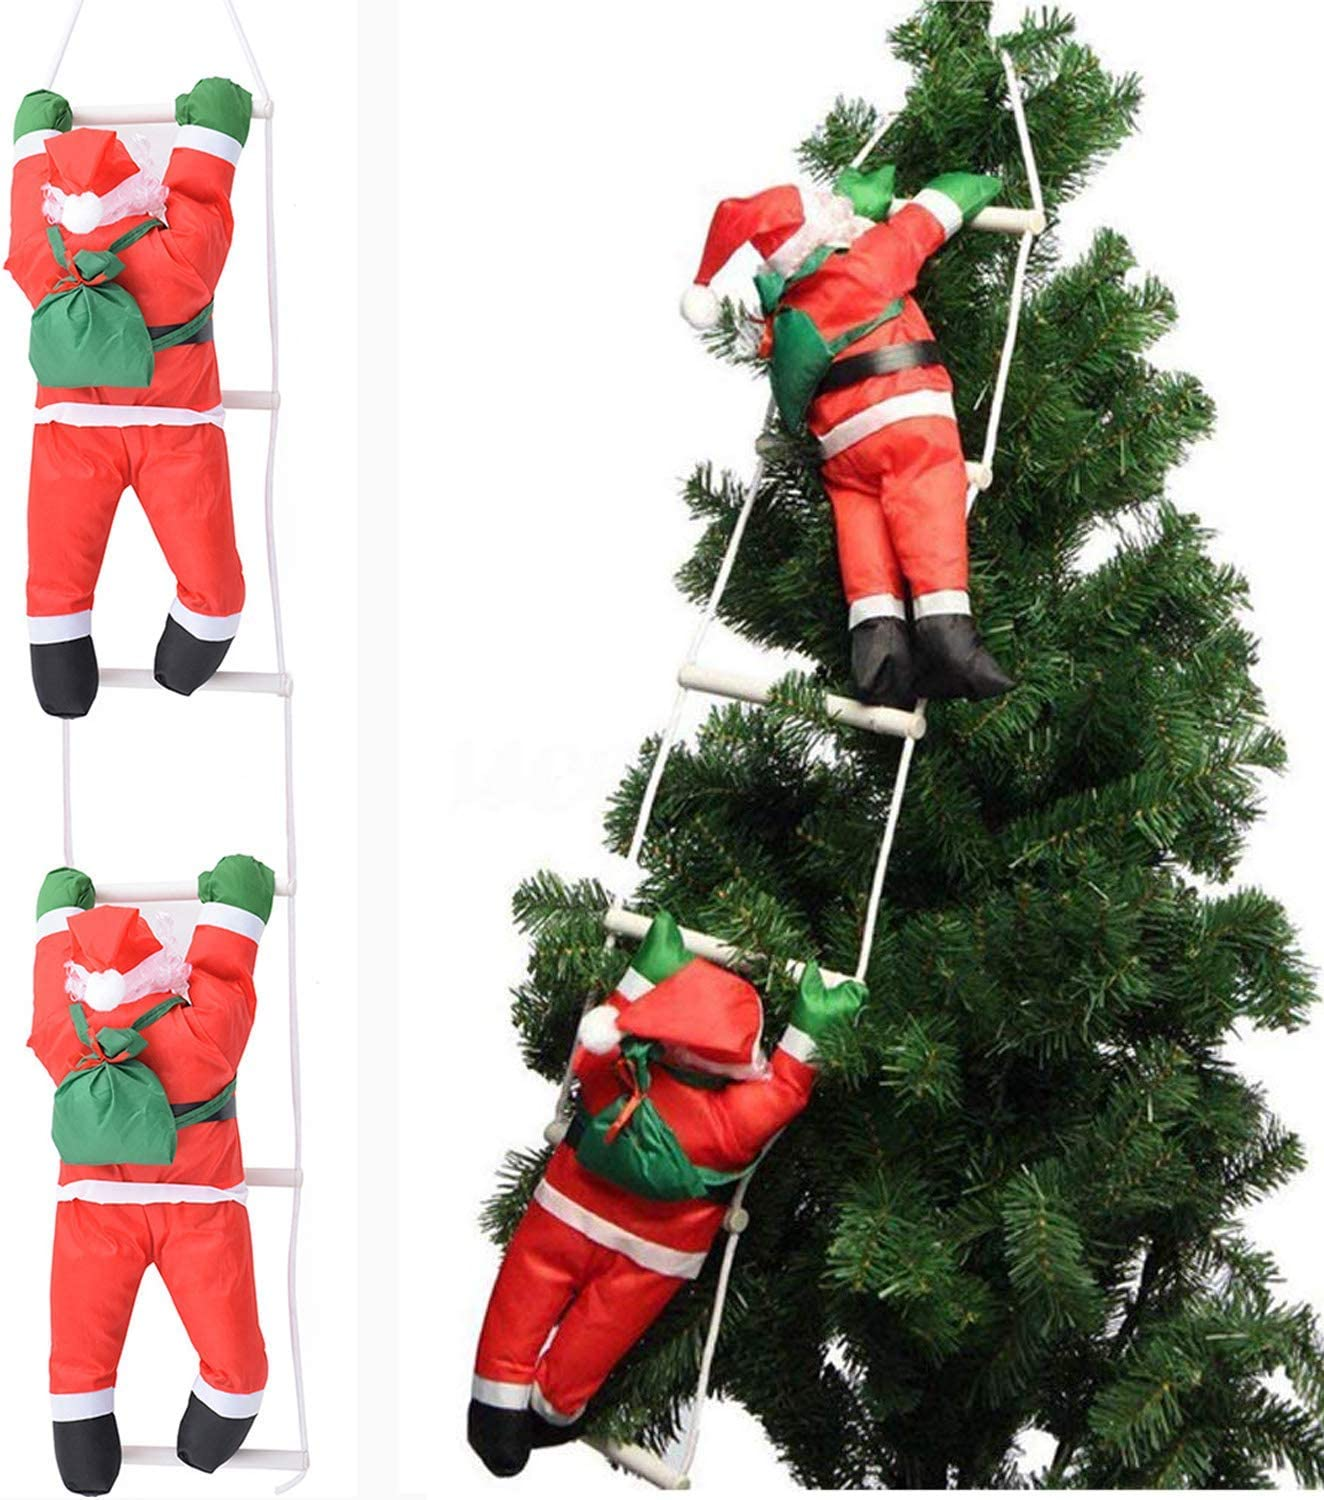 Bluelliant Christmas Santa Claus Climbing On Rope Ladder for Xmas Tree 30.31 inch Big Size Hanging Home Decor Ornaments (2 Santa Claus)